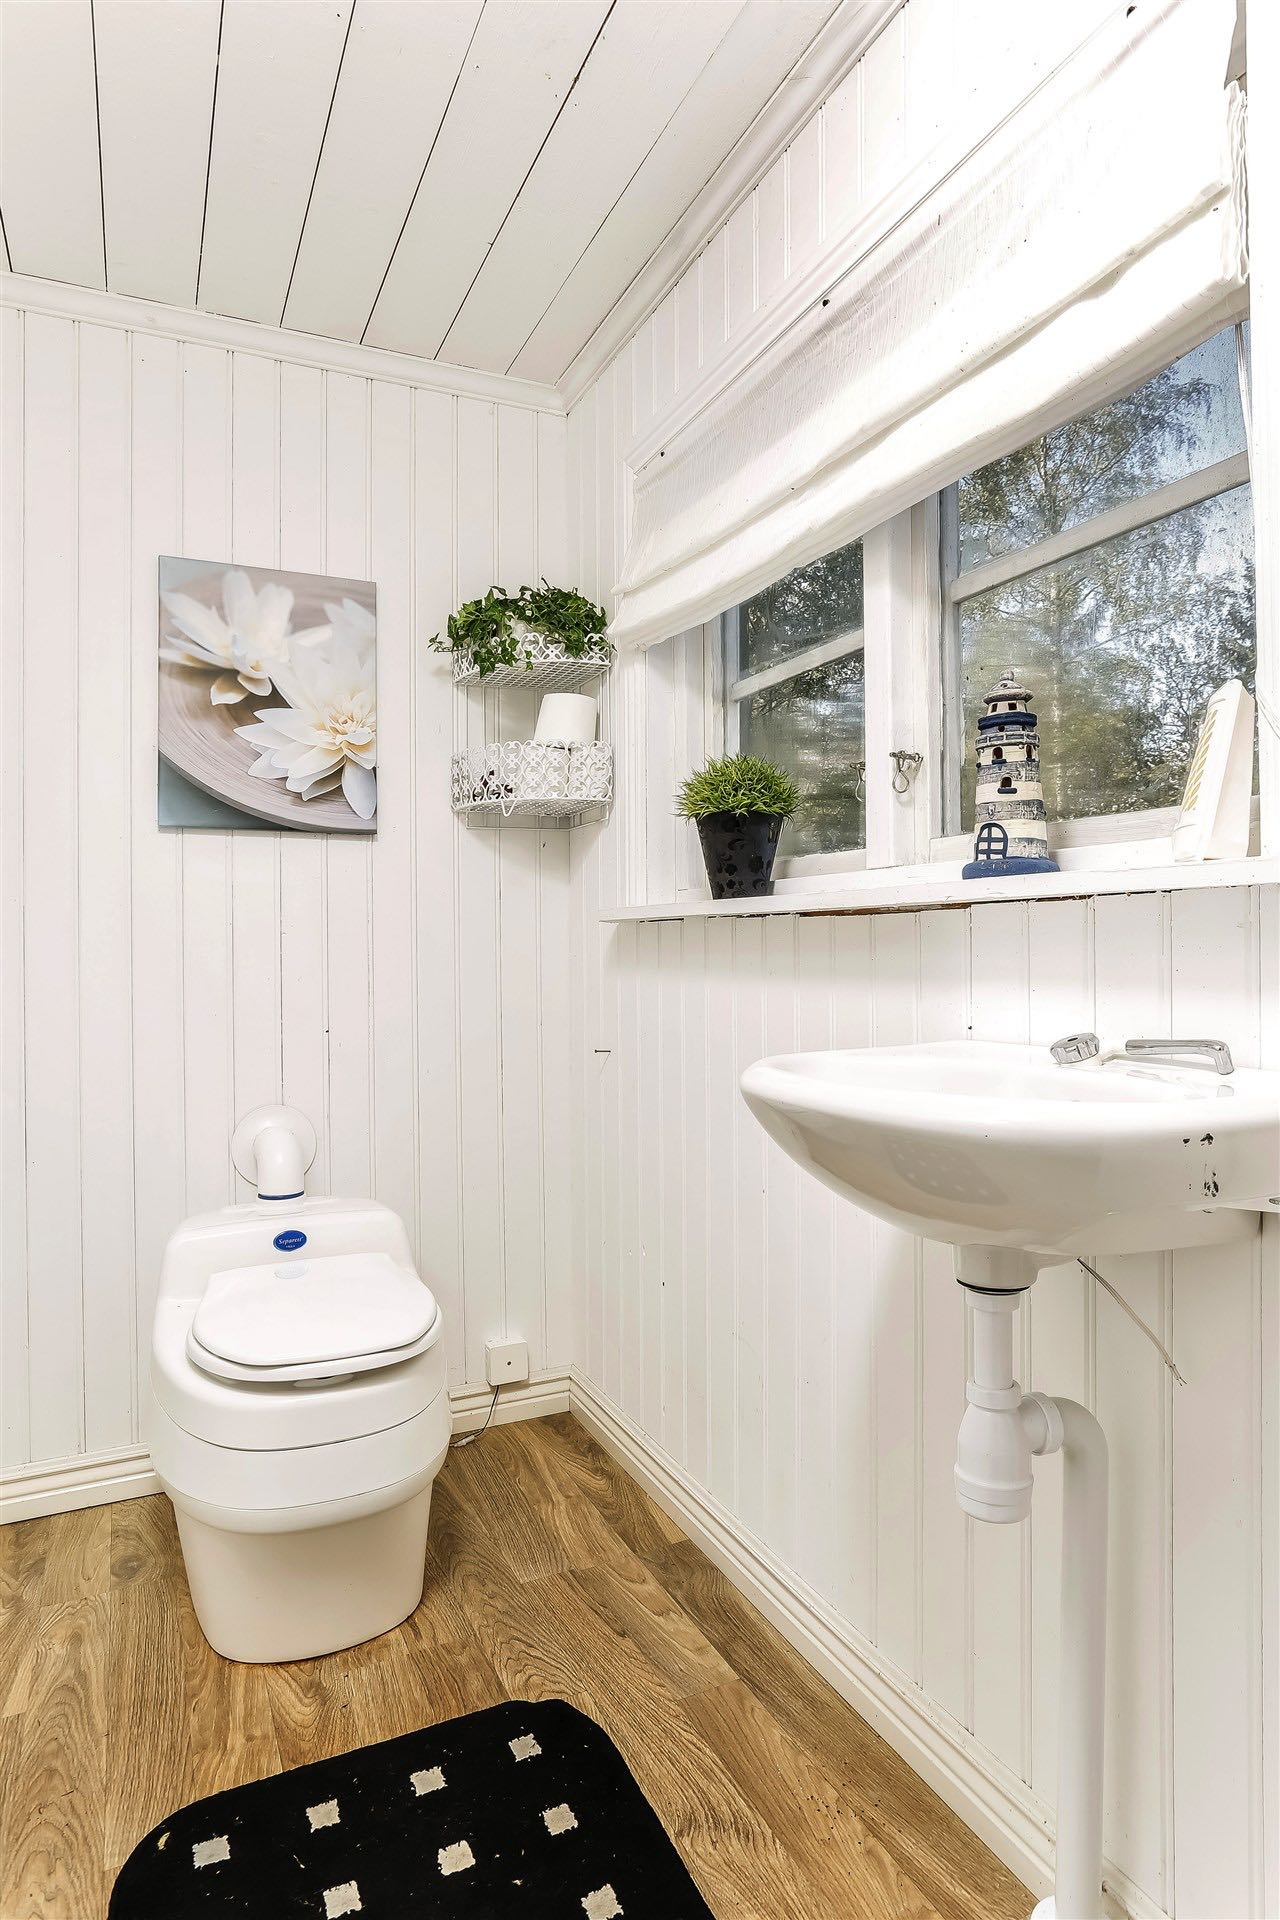 Gallery: Off-grid island cottage in Sweden | Small House Bliss